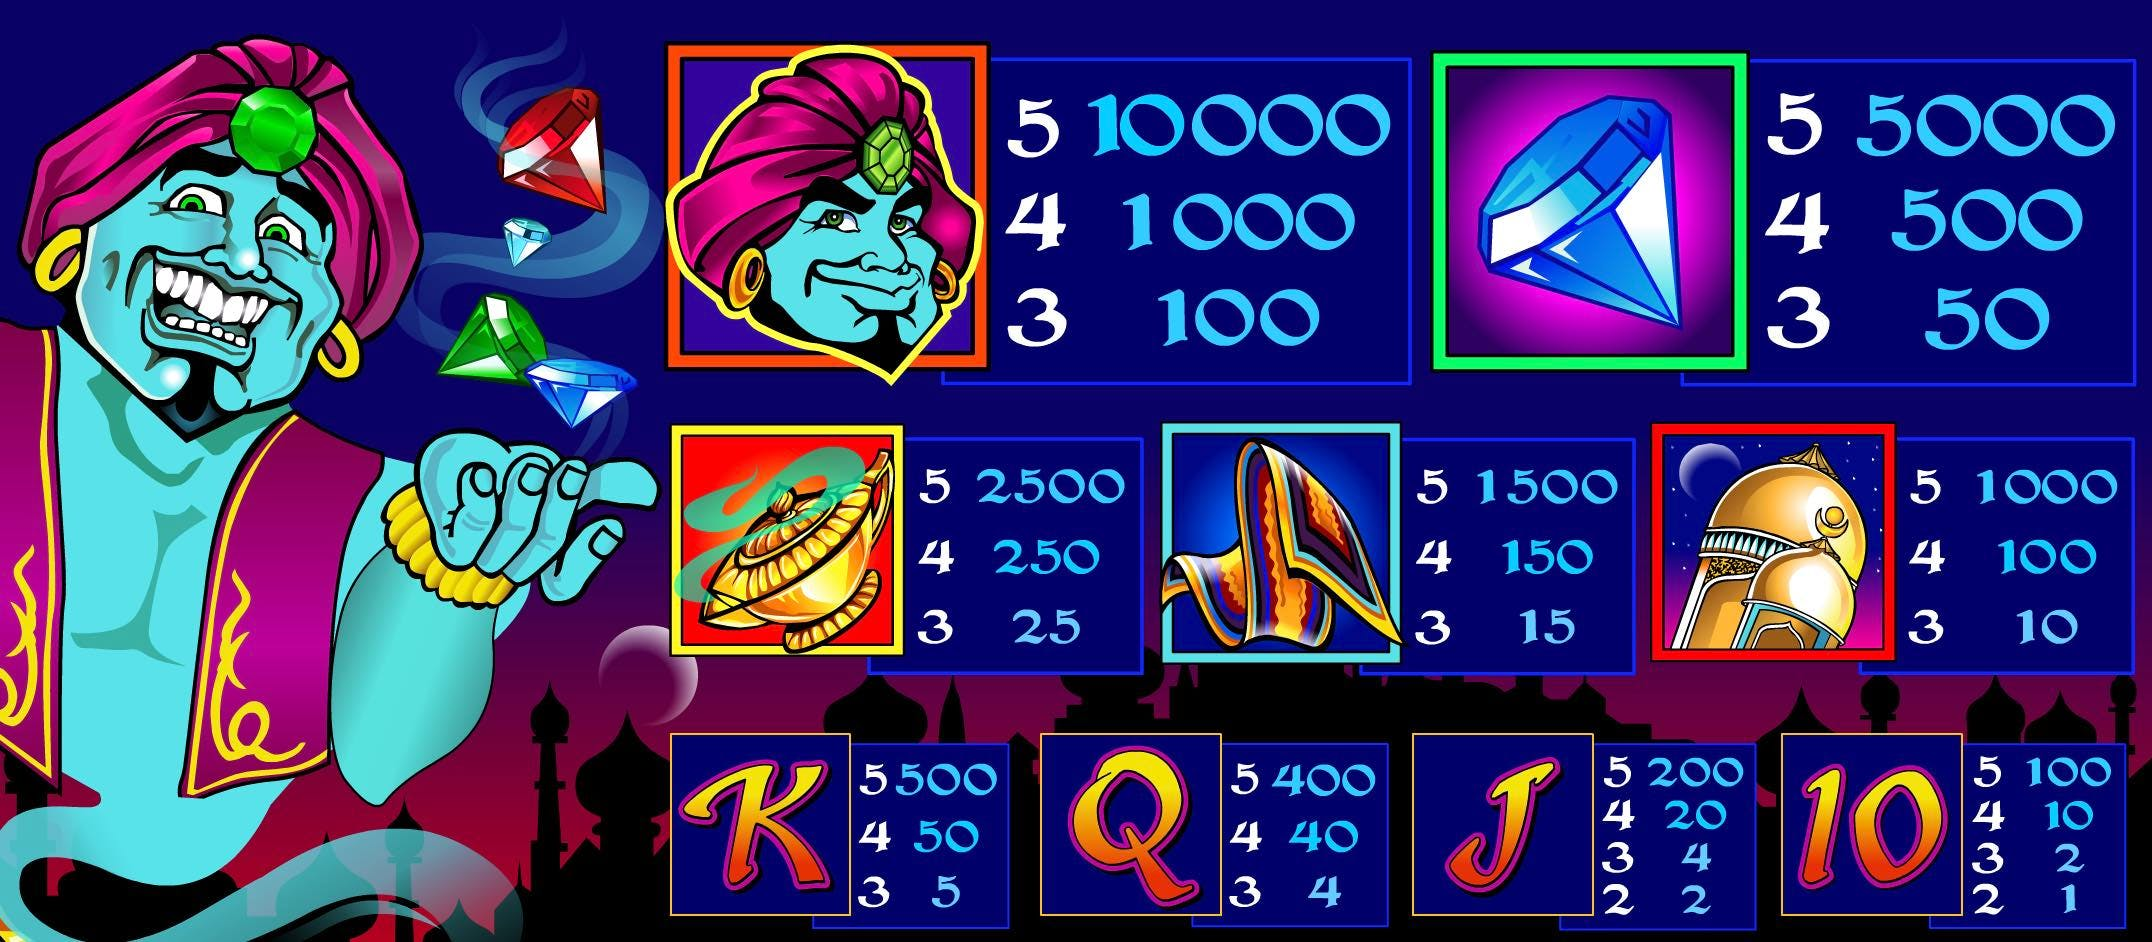 In-Depth Review: Genie's Gems might be shiny and bright, but